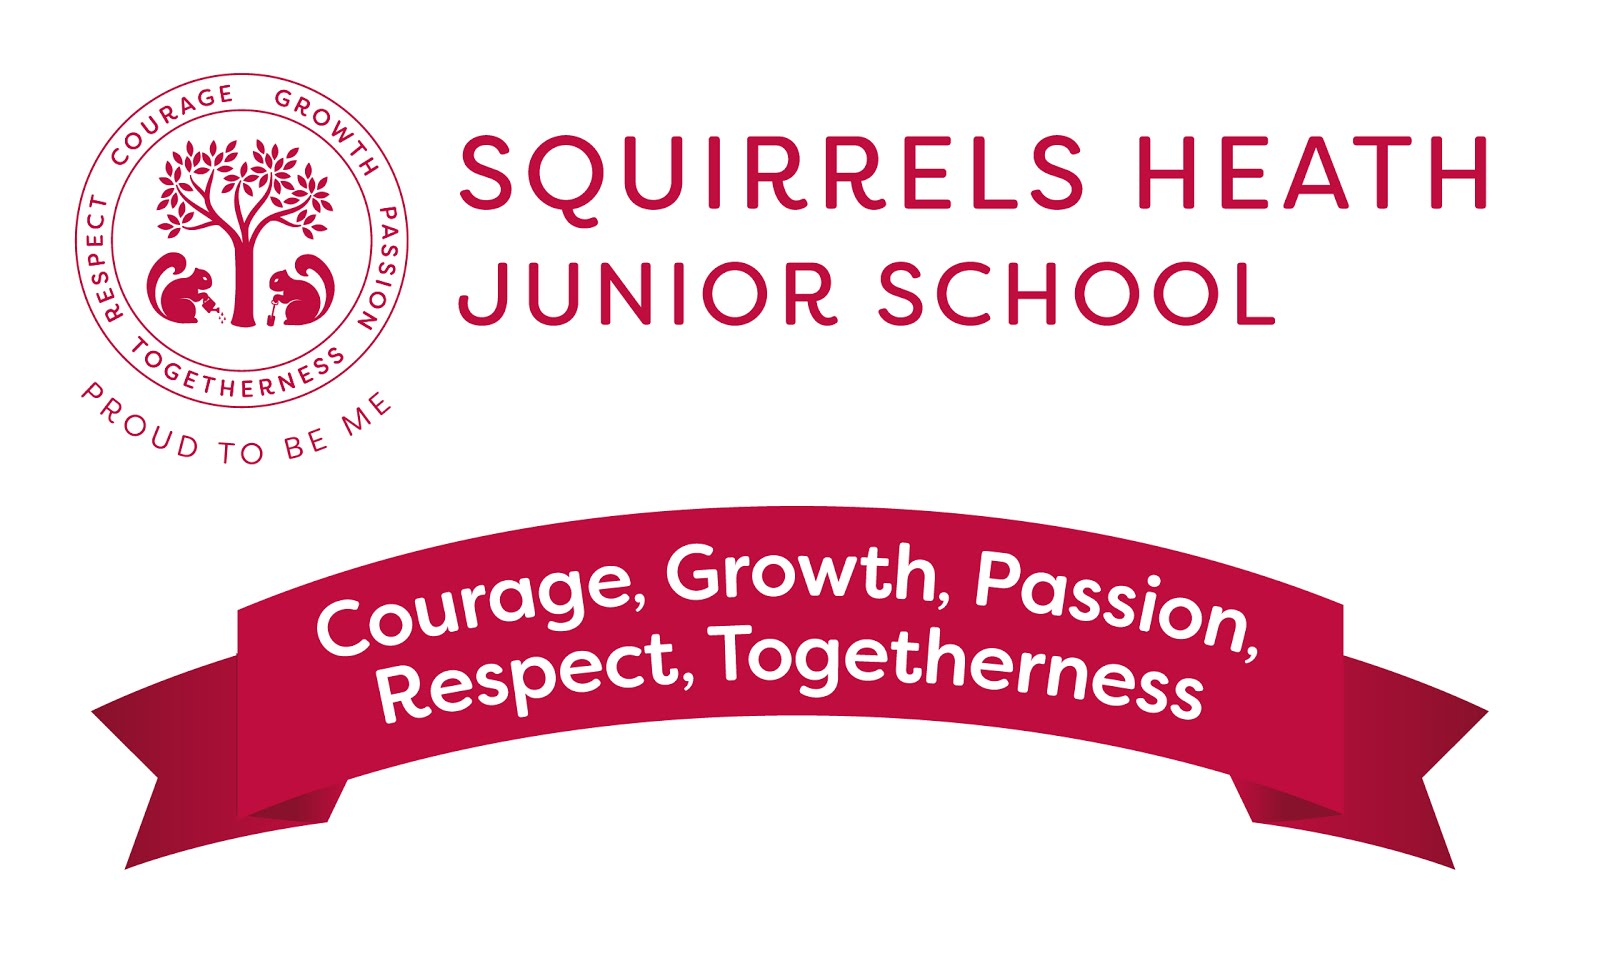 Squirrels Heath Junior School